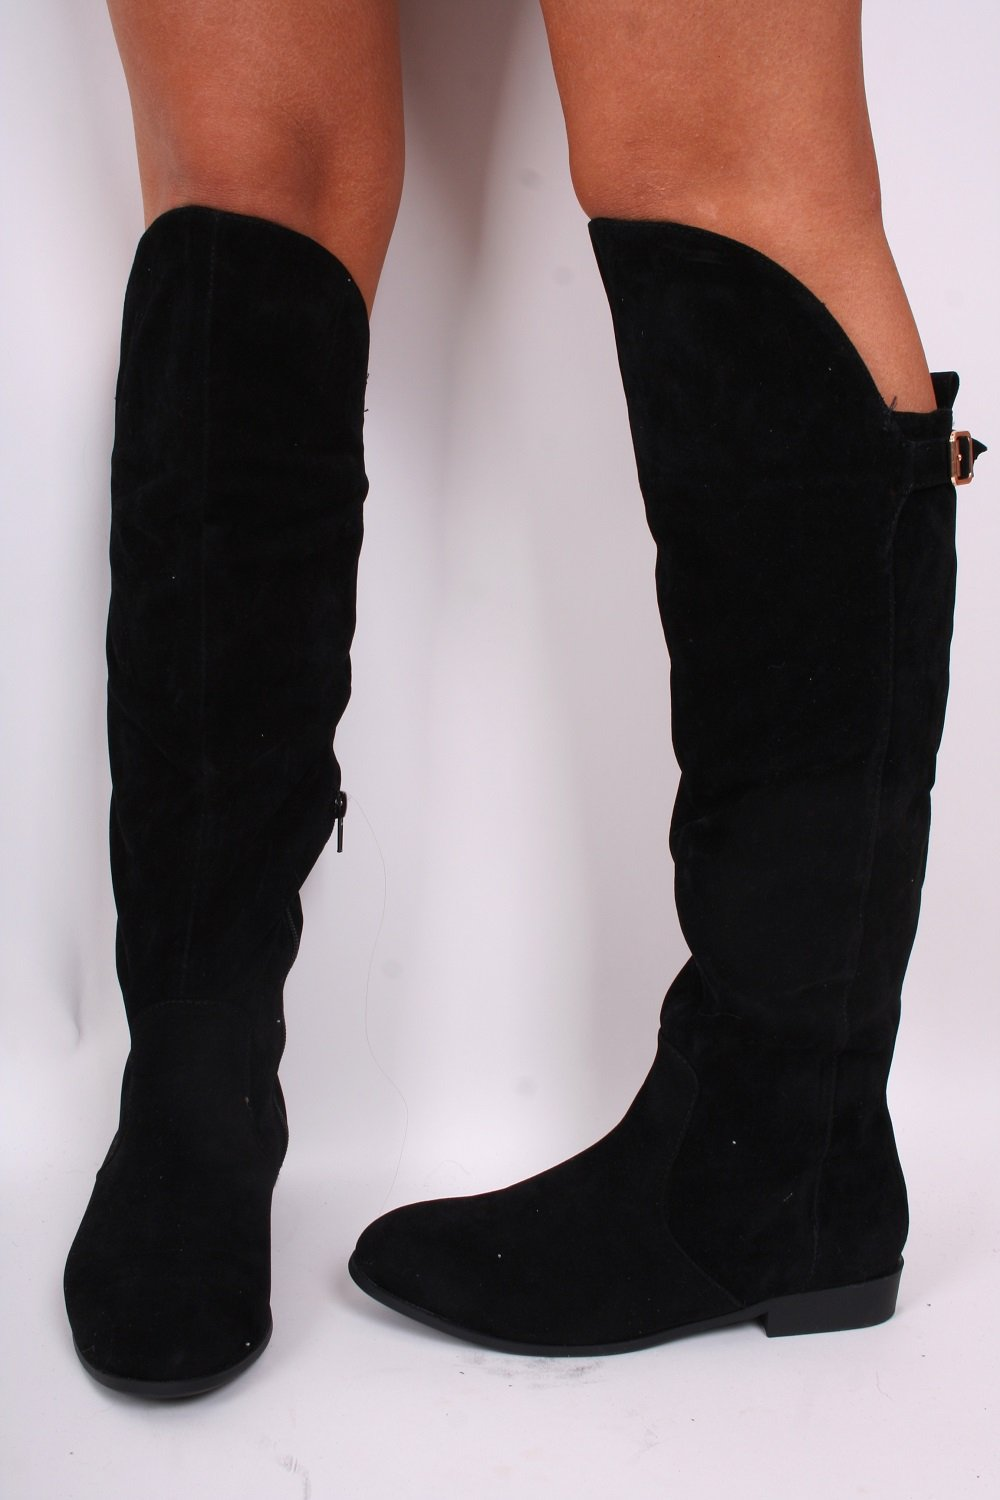 Over The Knee Flat Black Boots 3IATWlo1